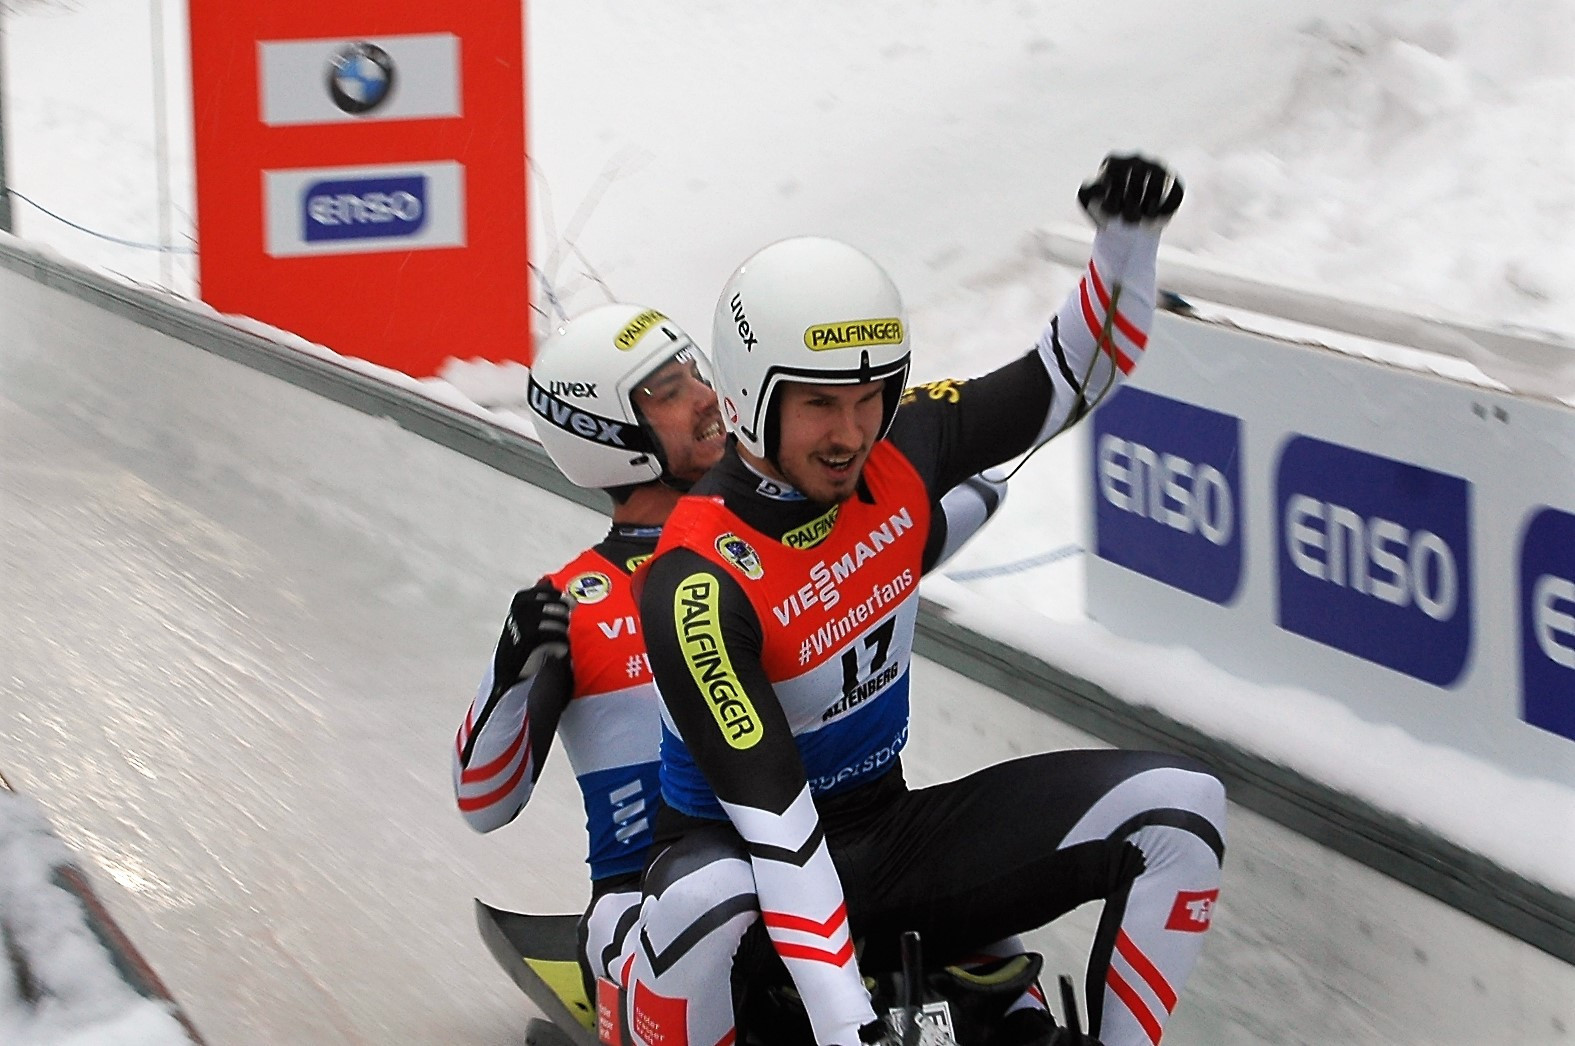 Austrian duo Thomas Steu and Lorenz Koller got their third victory of the season in Altenberg ©FIL